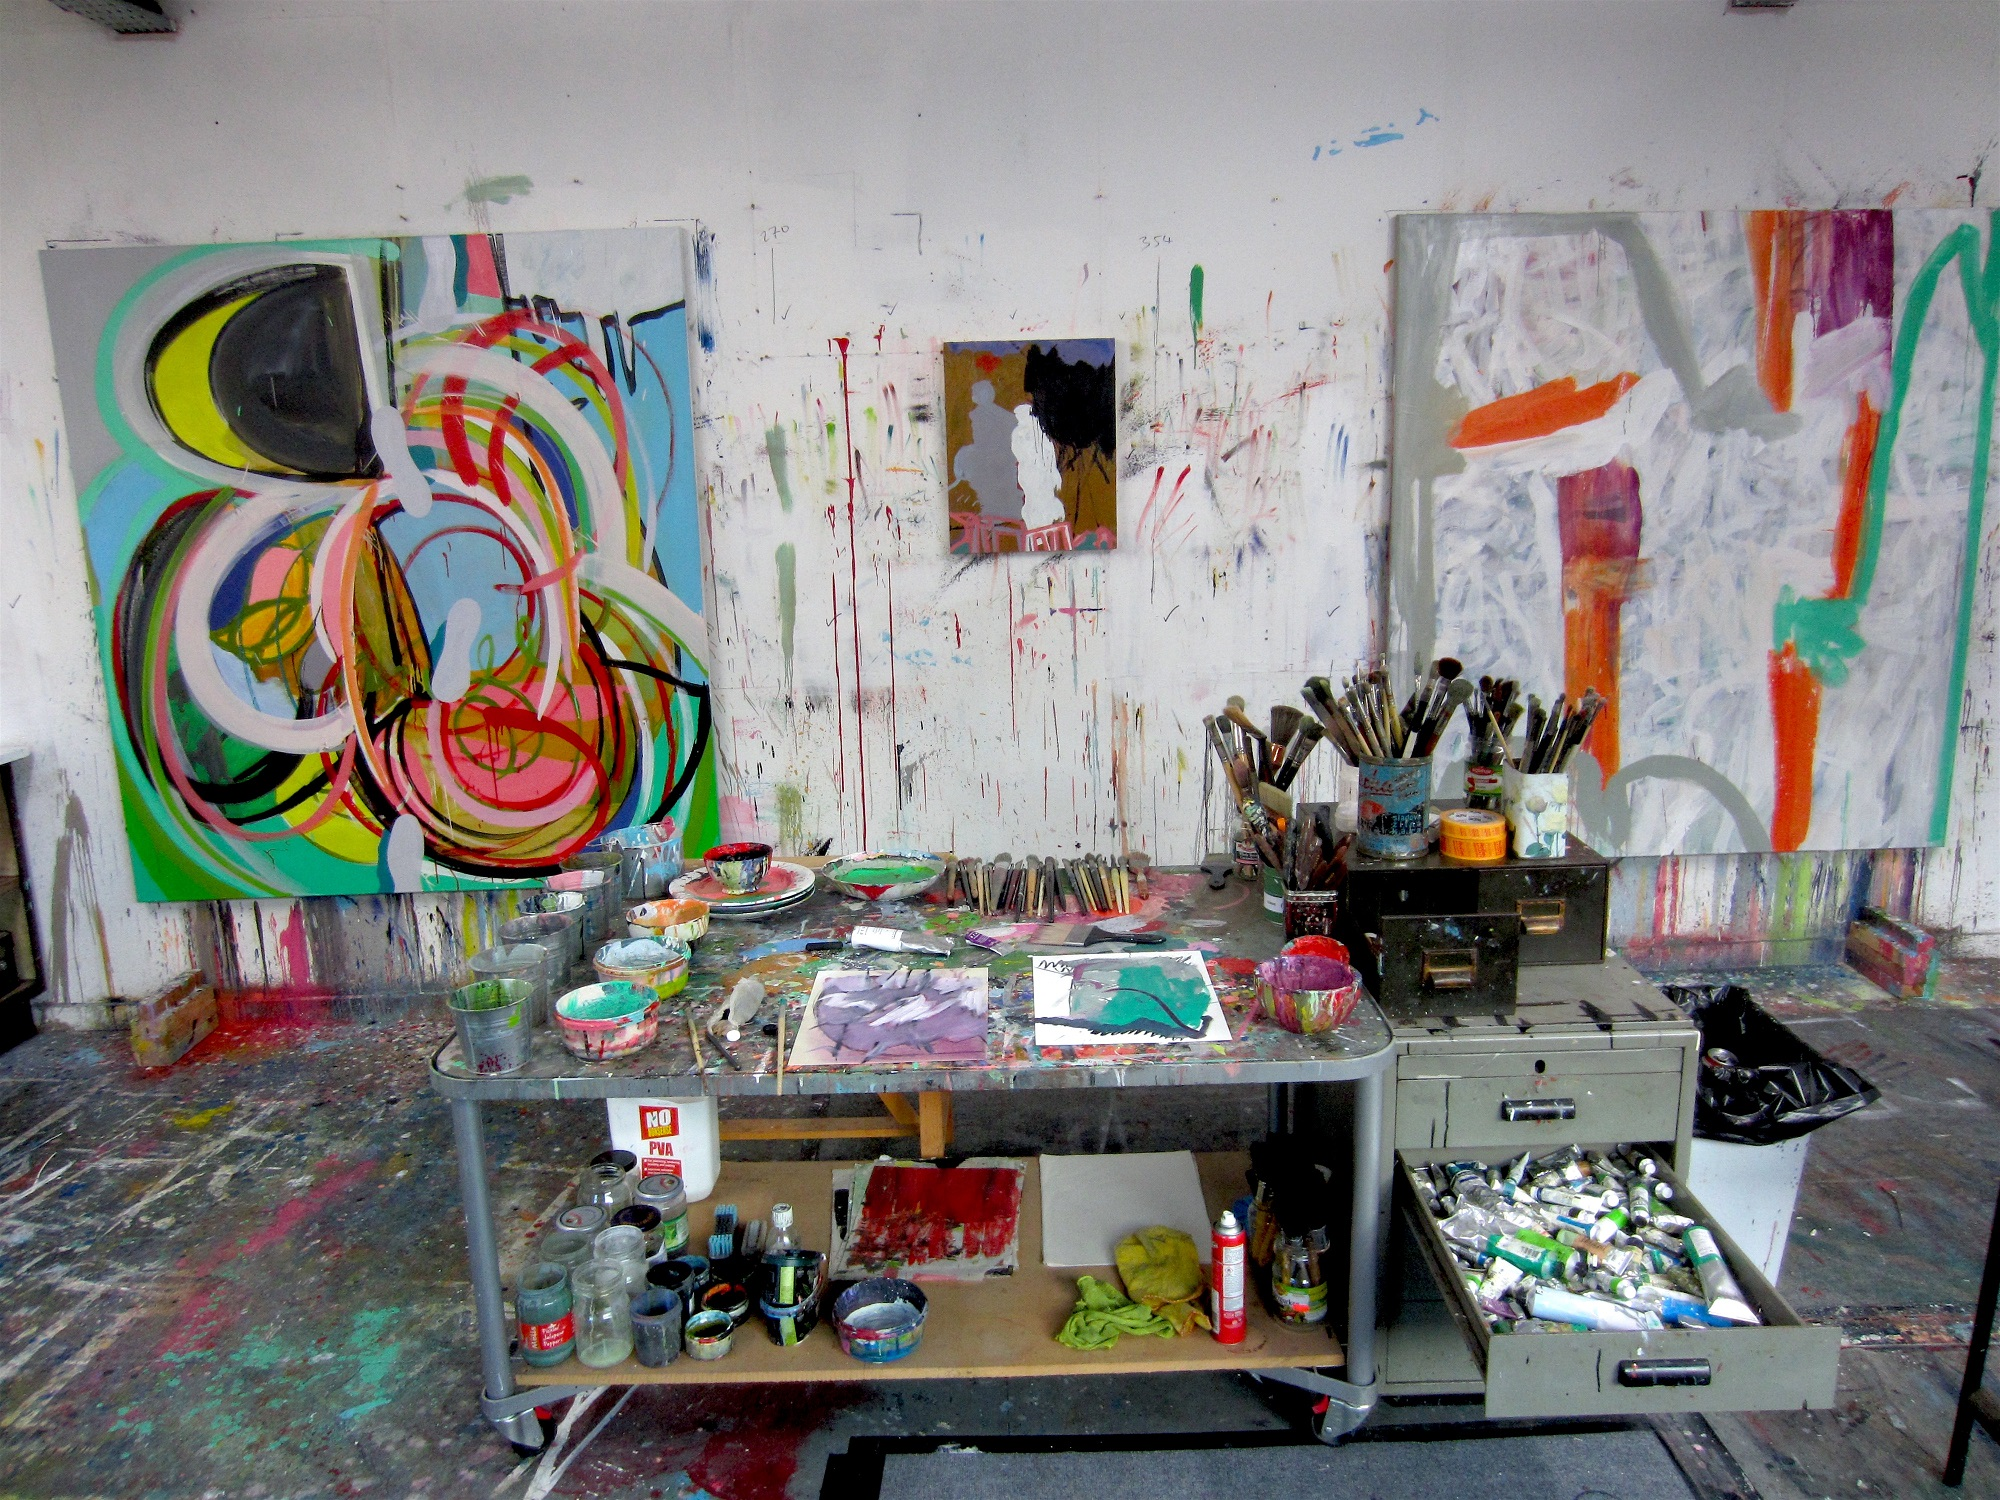 Works in progress at Karl Bielik's Studio